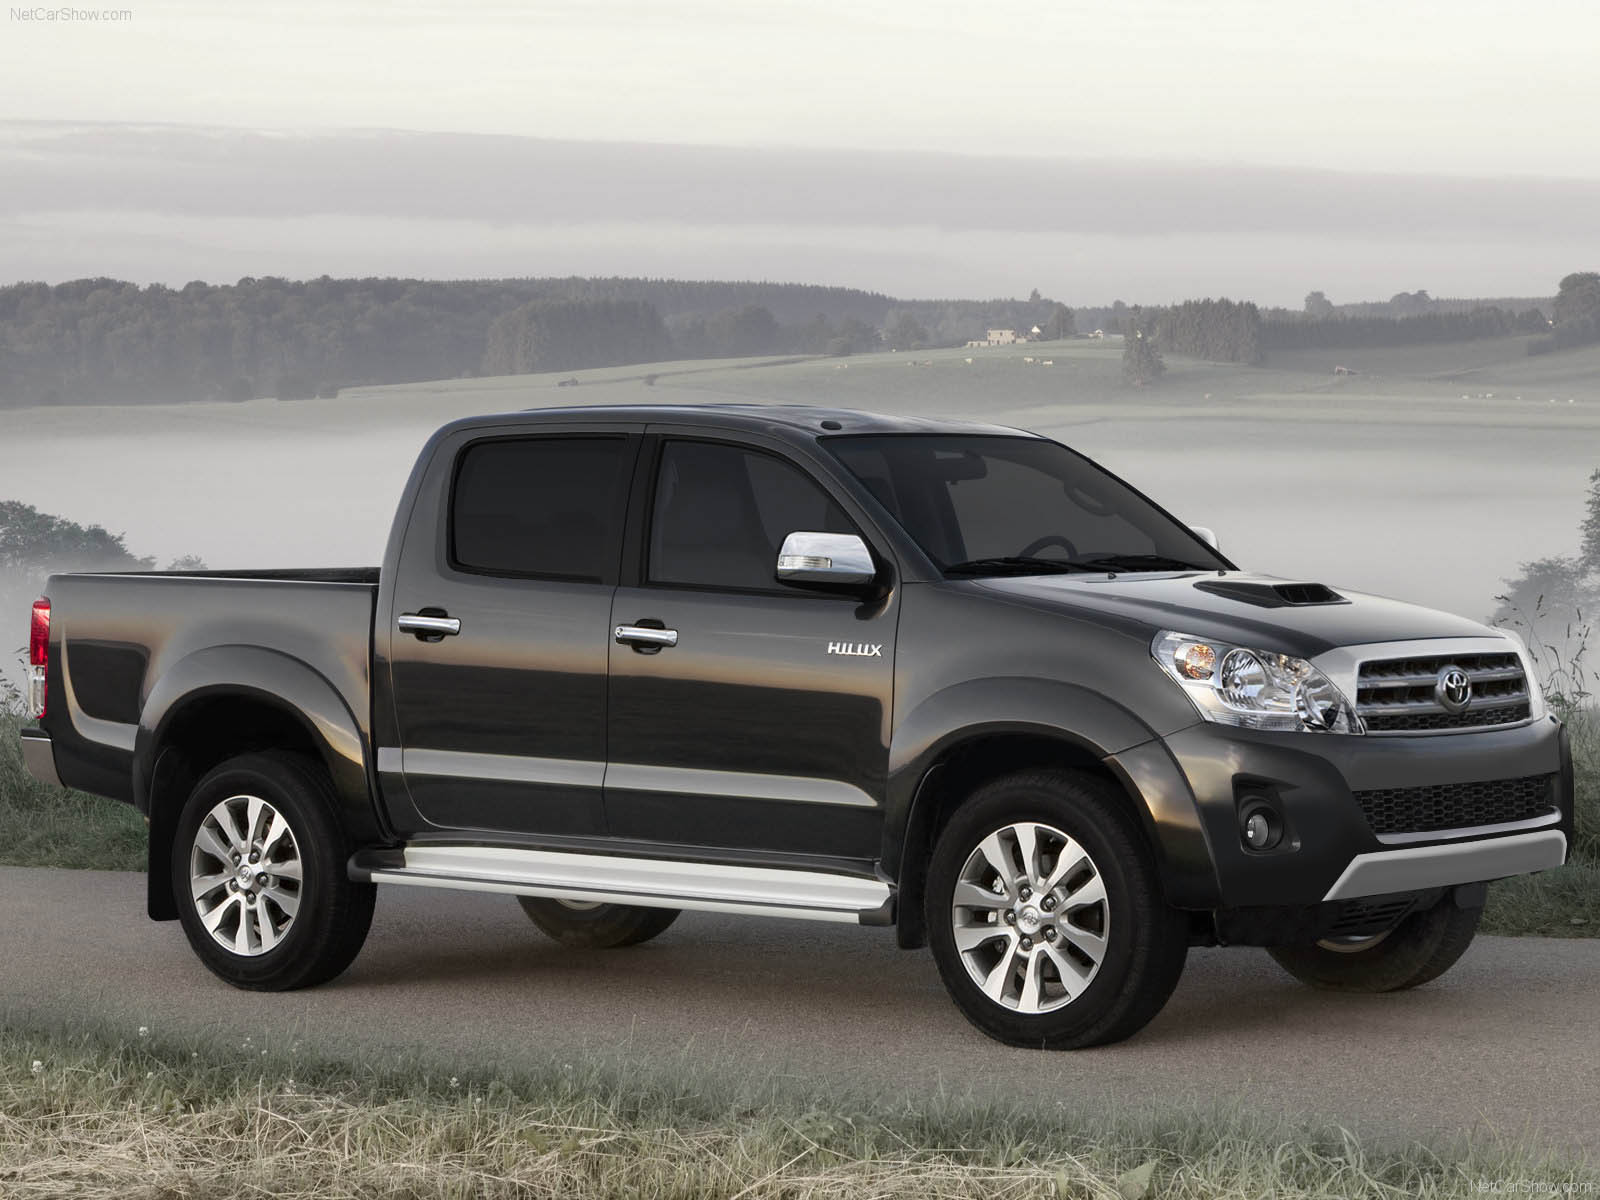 toyota hilux pickup truck review 2012 and pictures new car review. Black Bedroom Furniture Sets. Home Design Ideas